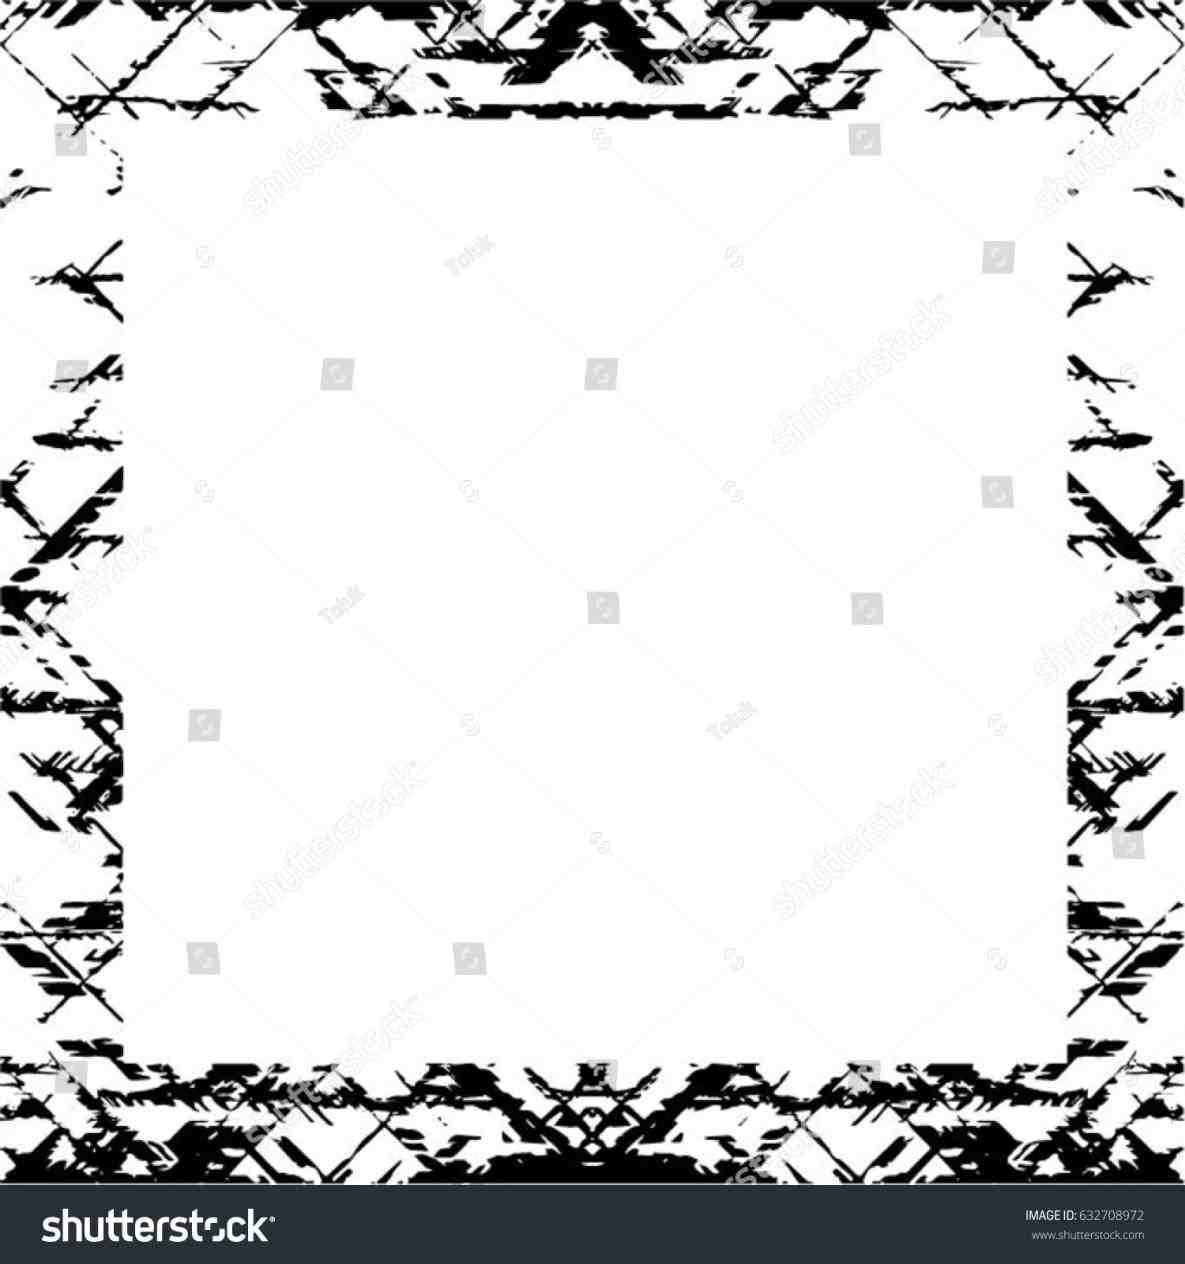 1185x1264 Free Rustic Border Vector Clipart Victorian Border Of Twigs And